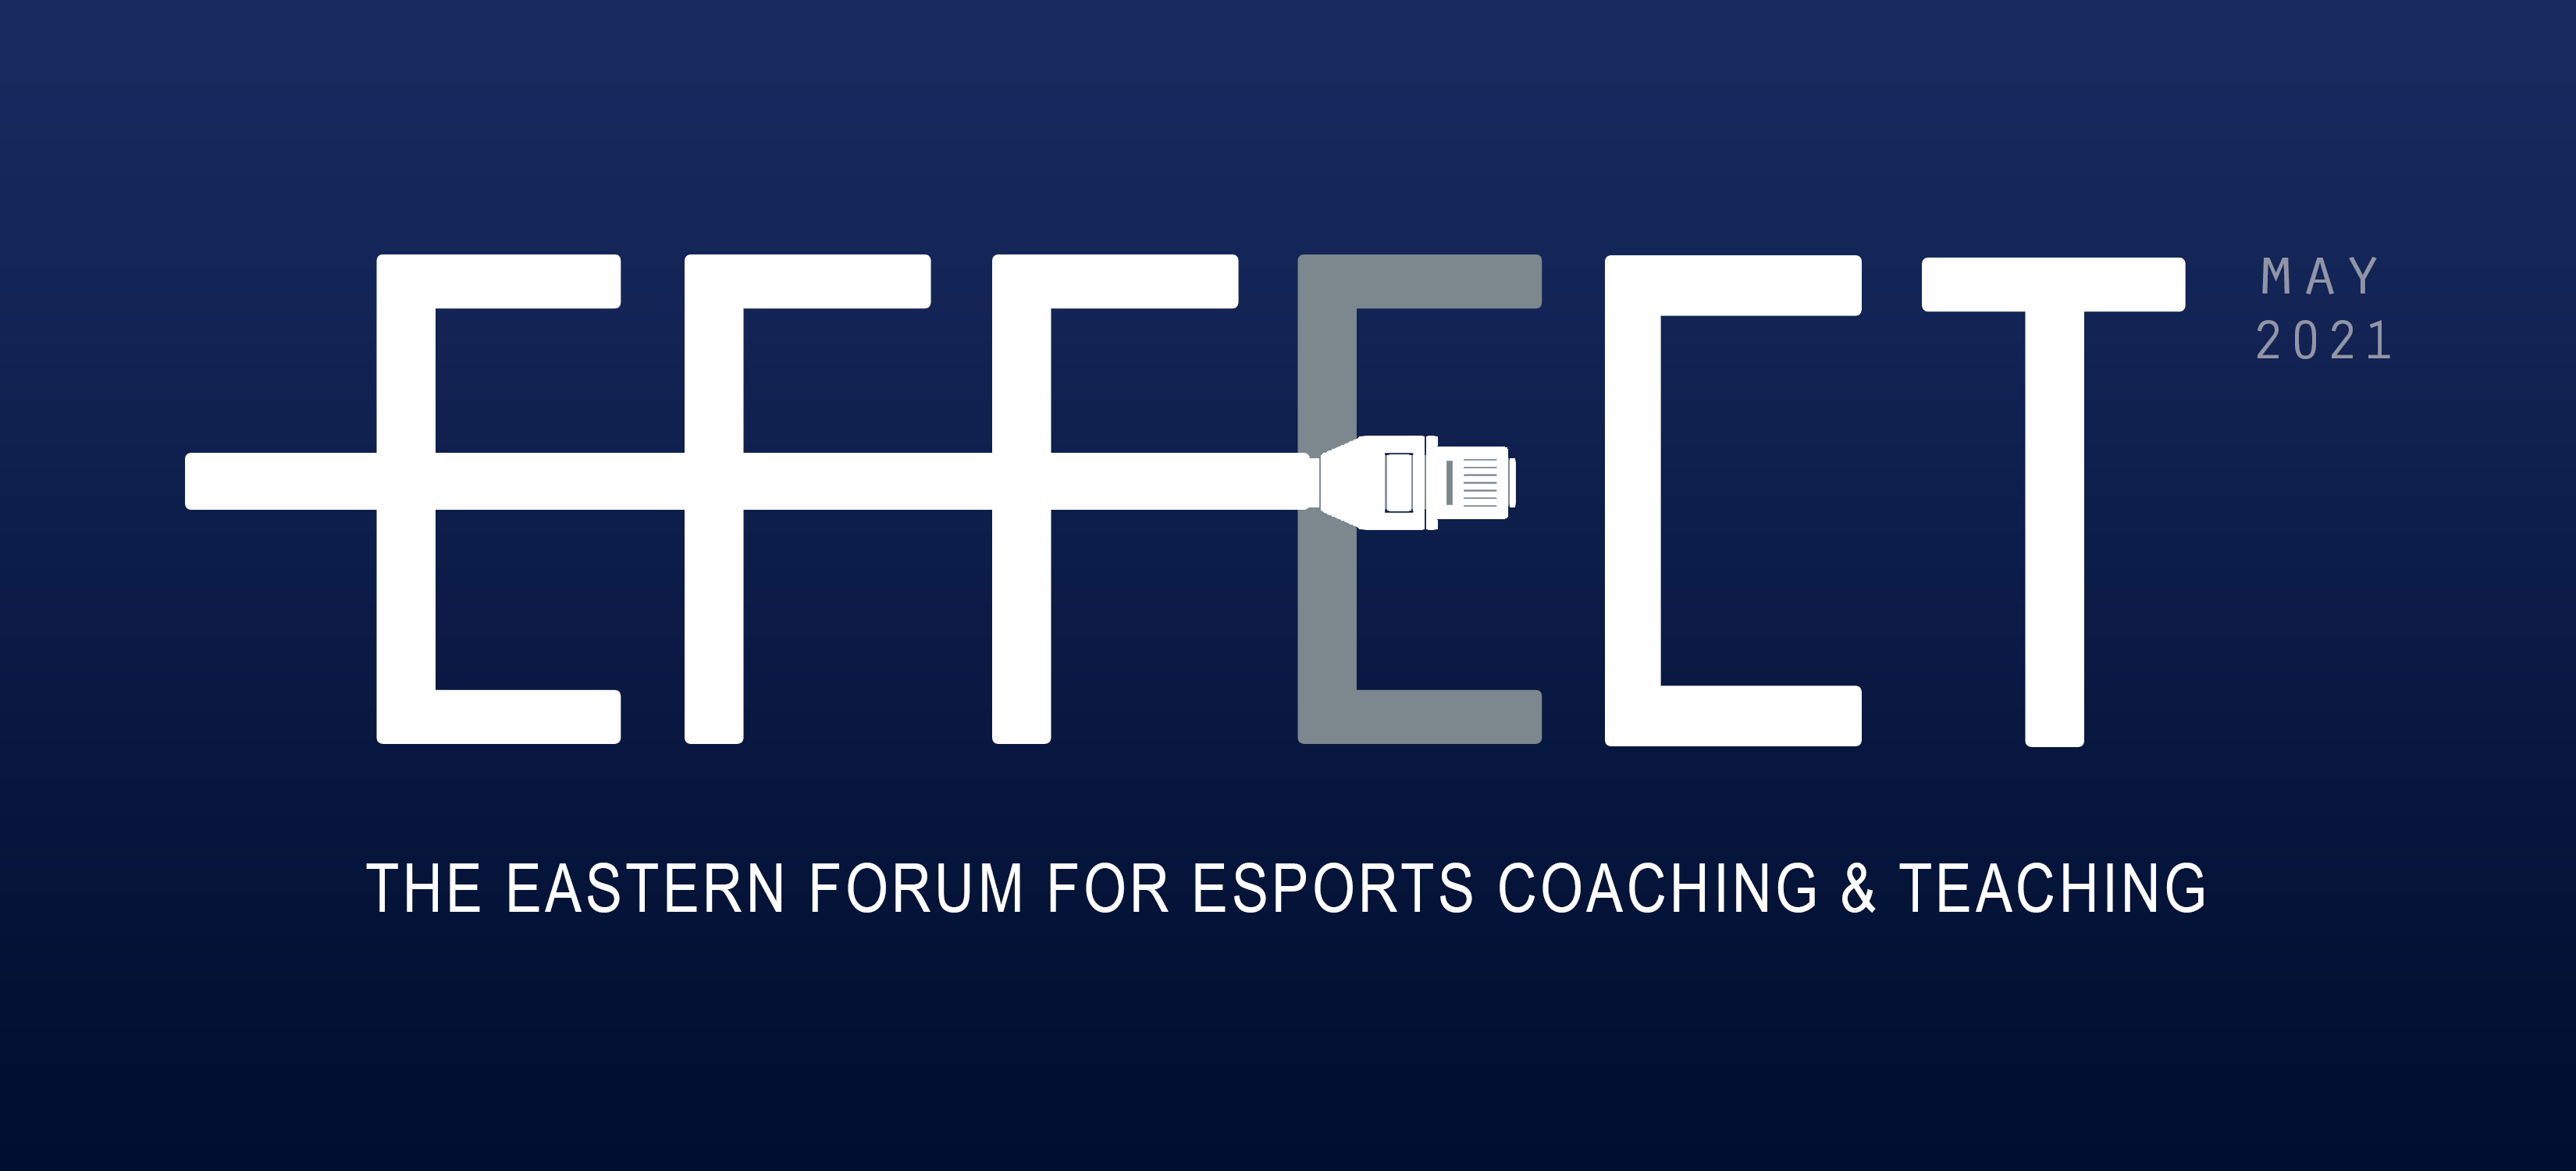 EFFECT Conference Logo (May 2021)